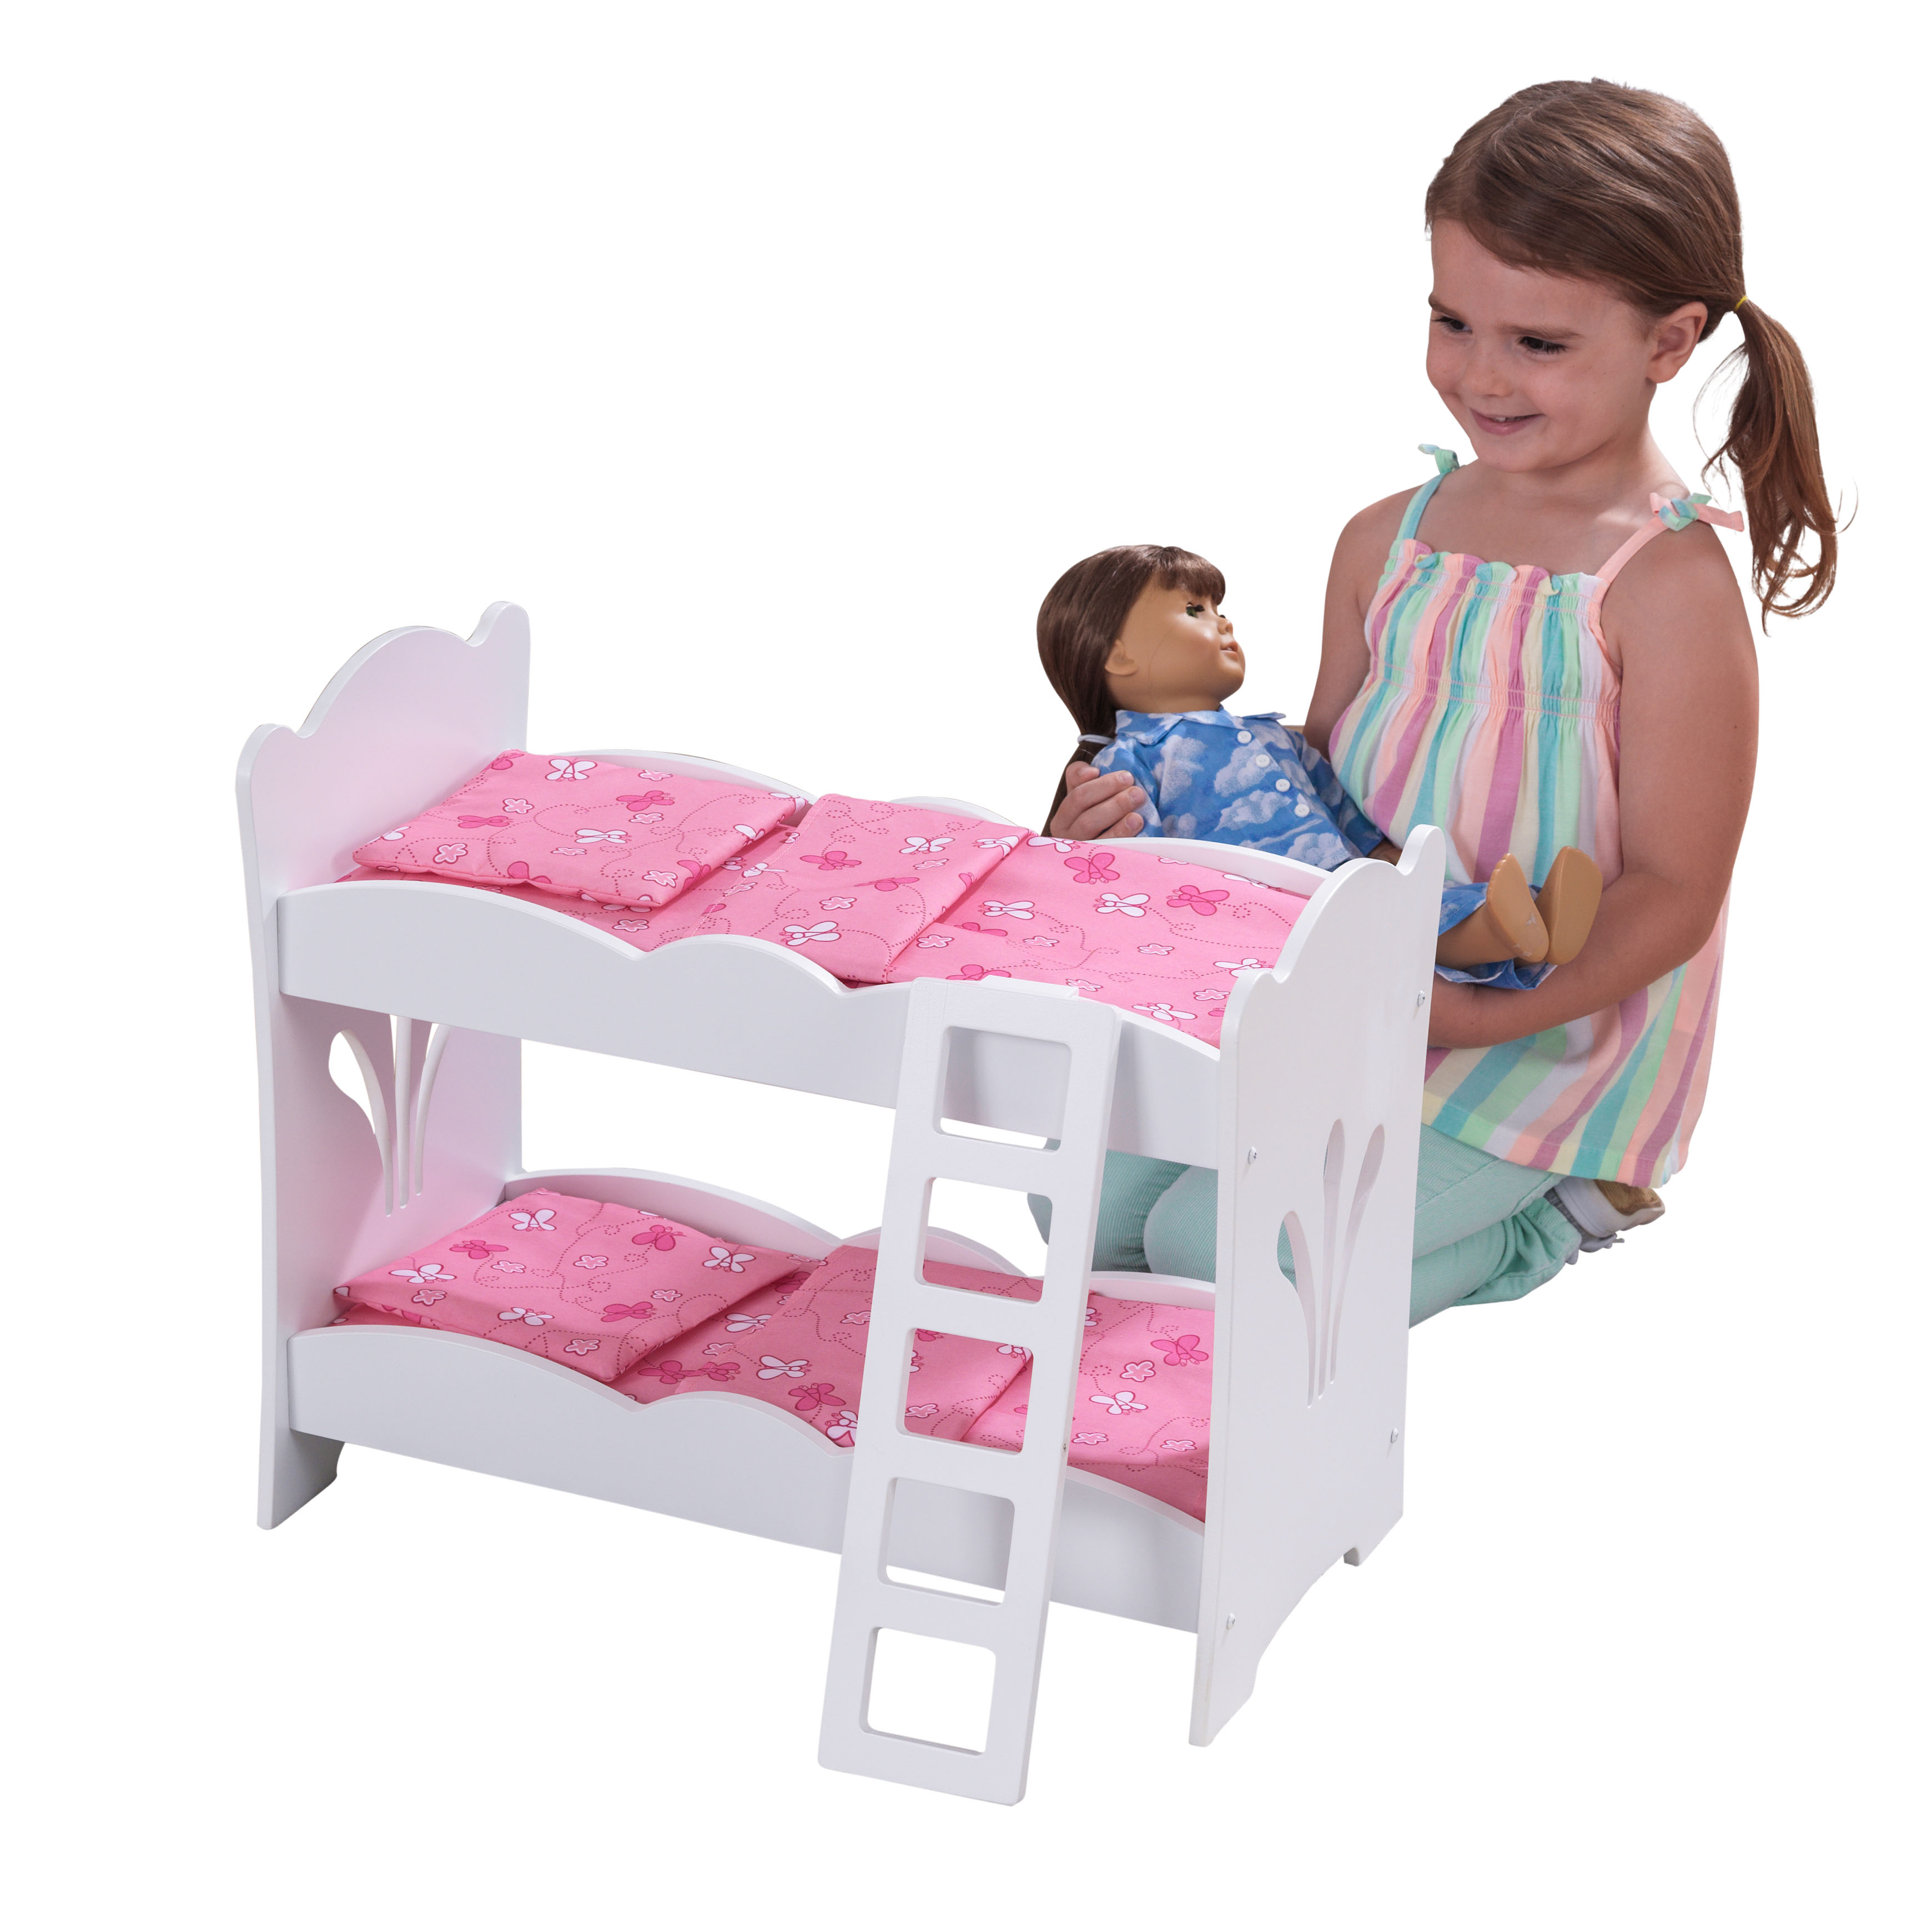 KidKraft Wooden Lil' Doll Bunk Bed with Bedding Set, Furniture for 18-Inch Dolls - White